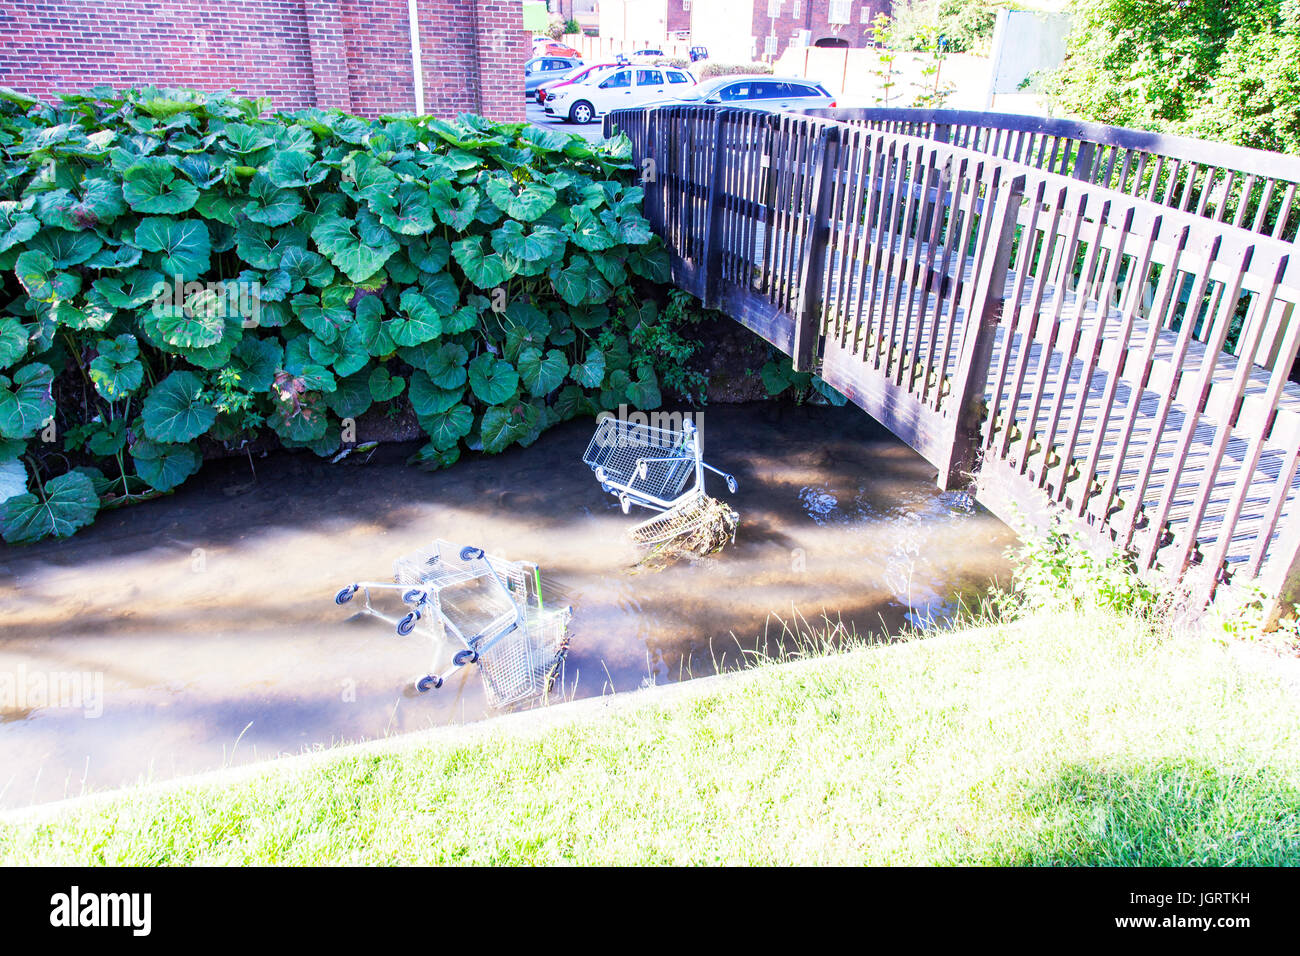 Shopping trolleys in river, shopping trolley in river, thrown in river, shopping trolleys thrown in river, vandalism, - Stock Image